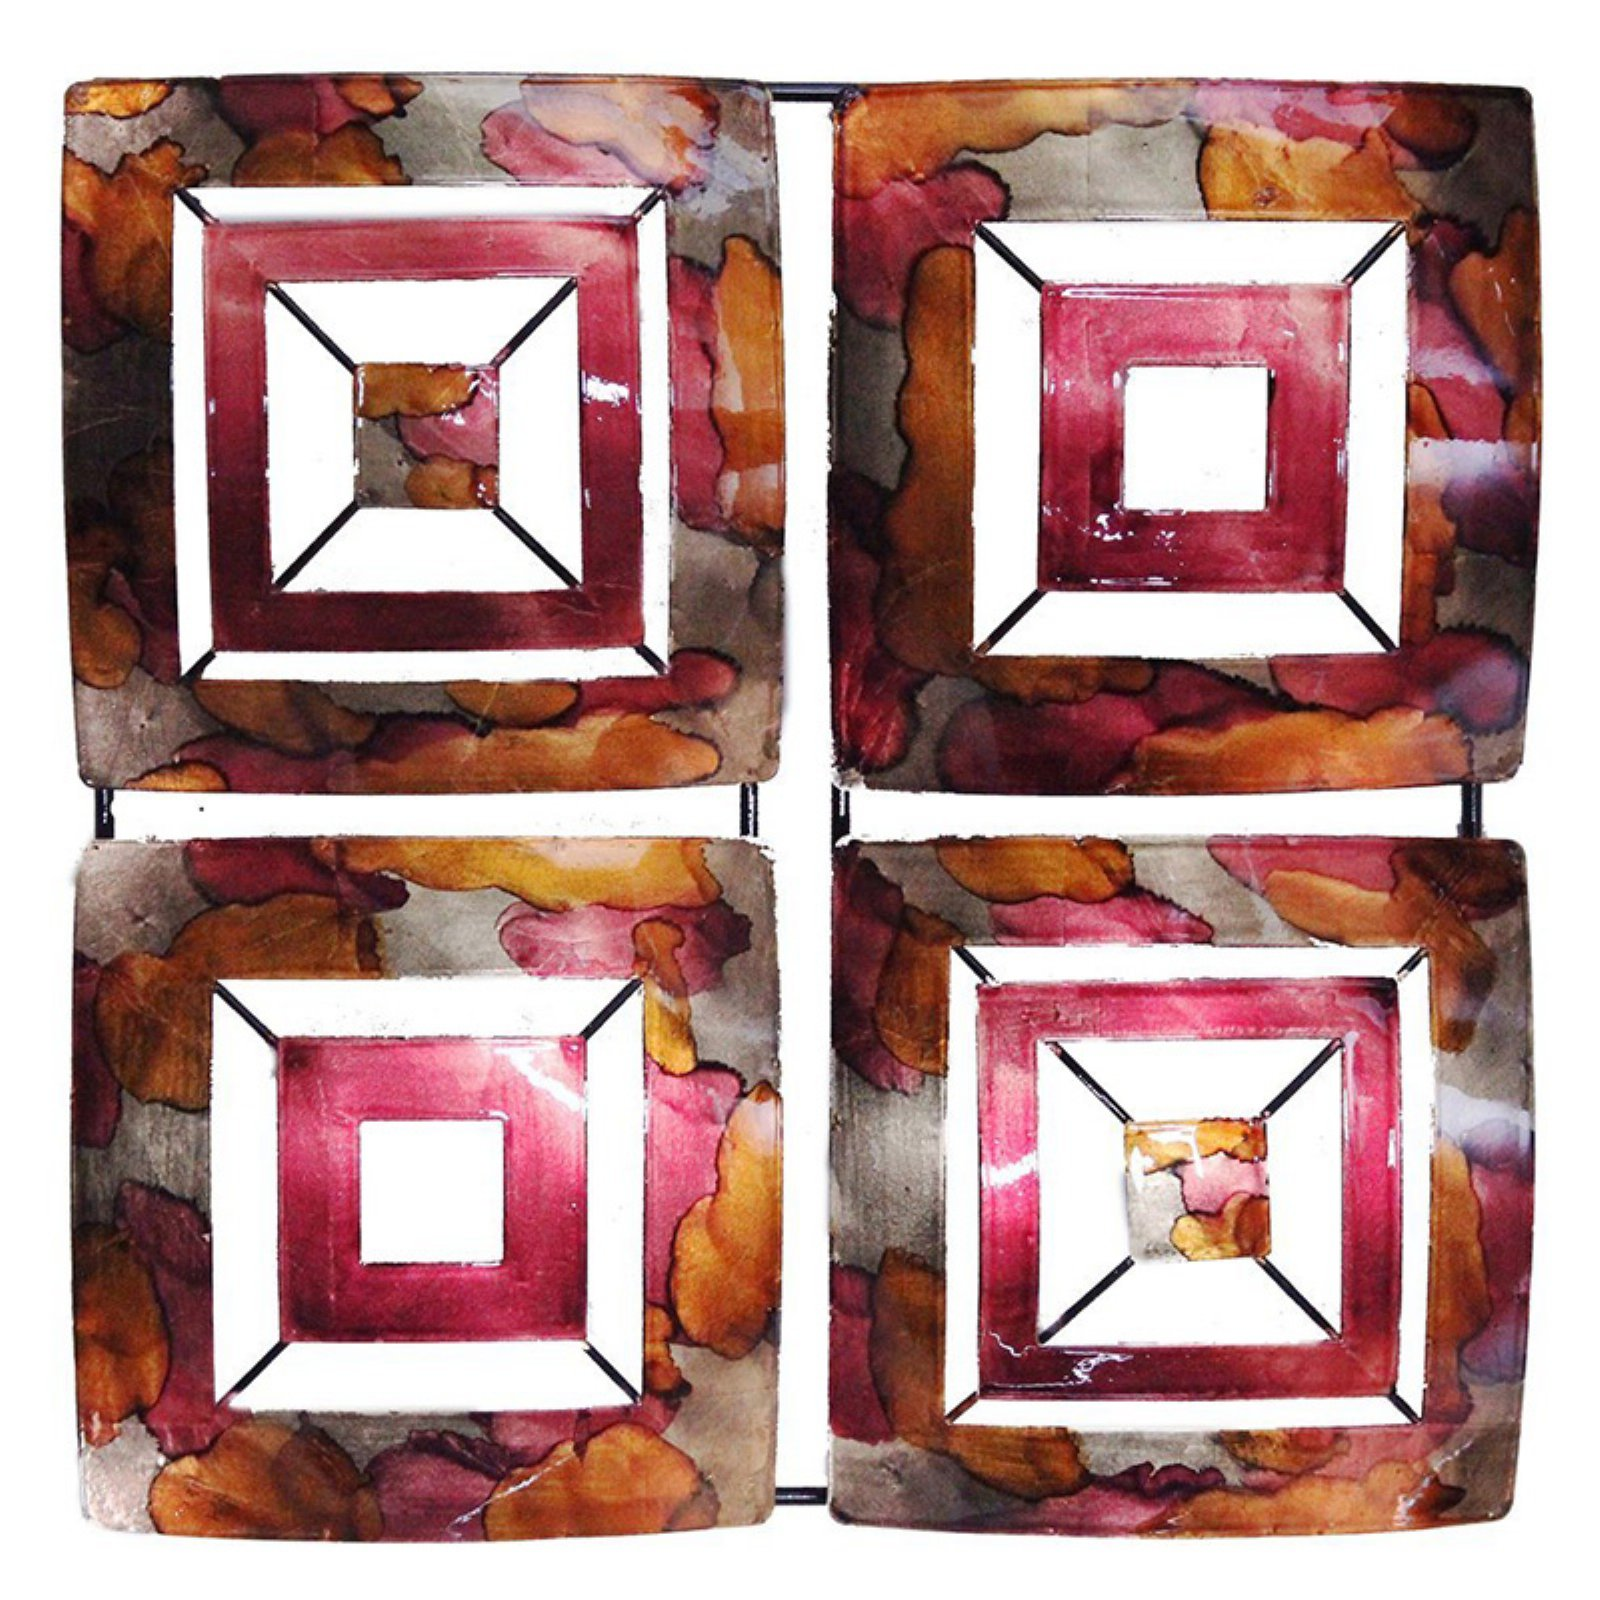 Heather Ann Creations 4 Abstract Geometric Square Panel Modern Metal Hanging Wall Sculpture